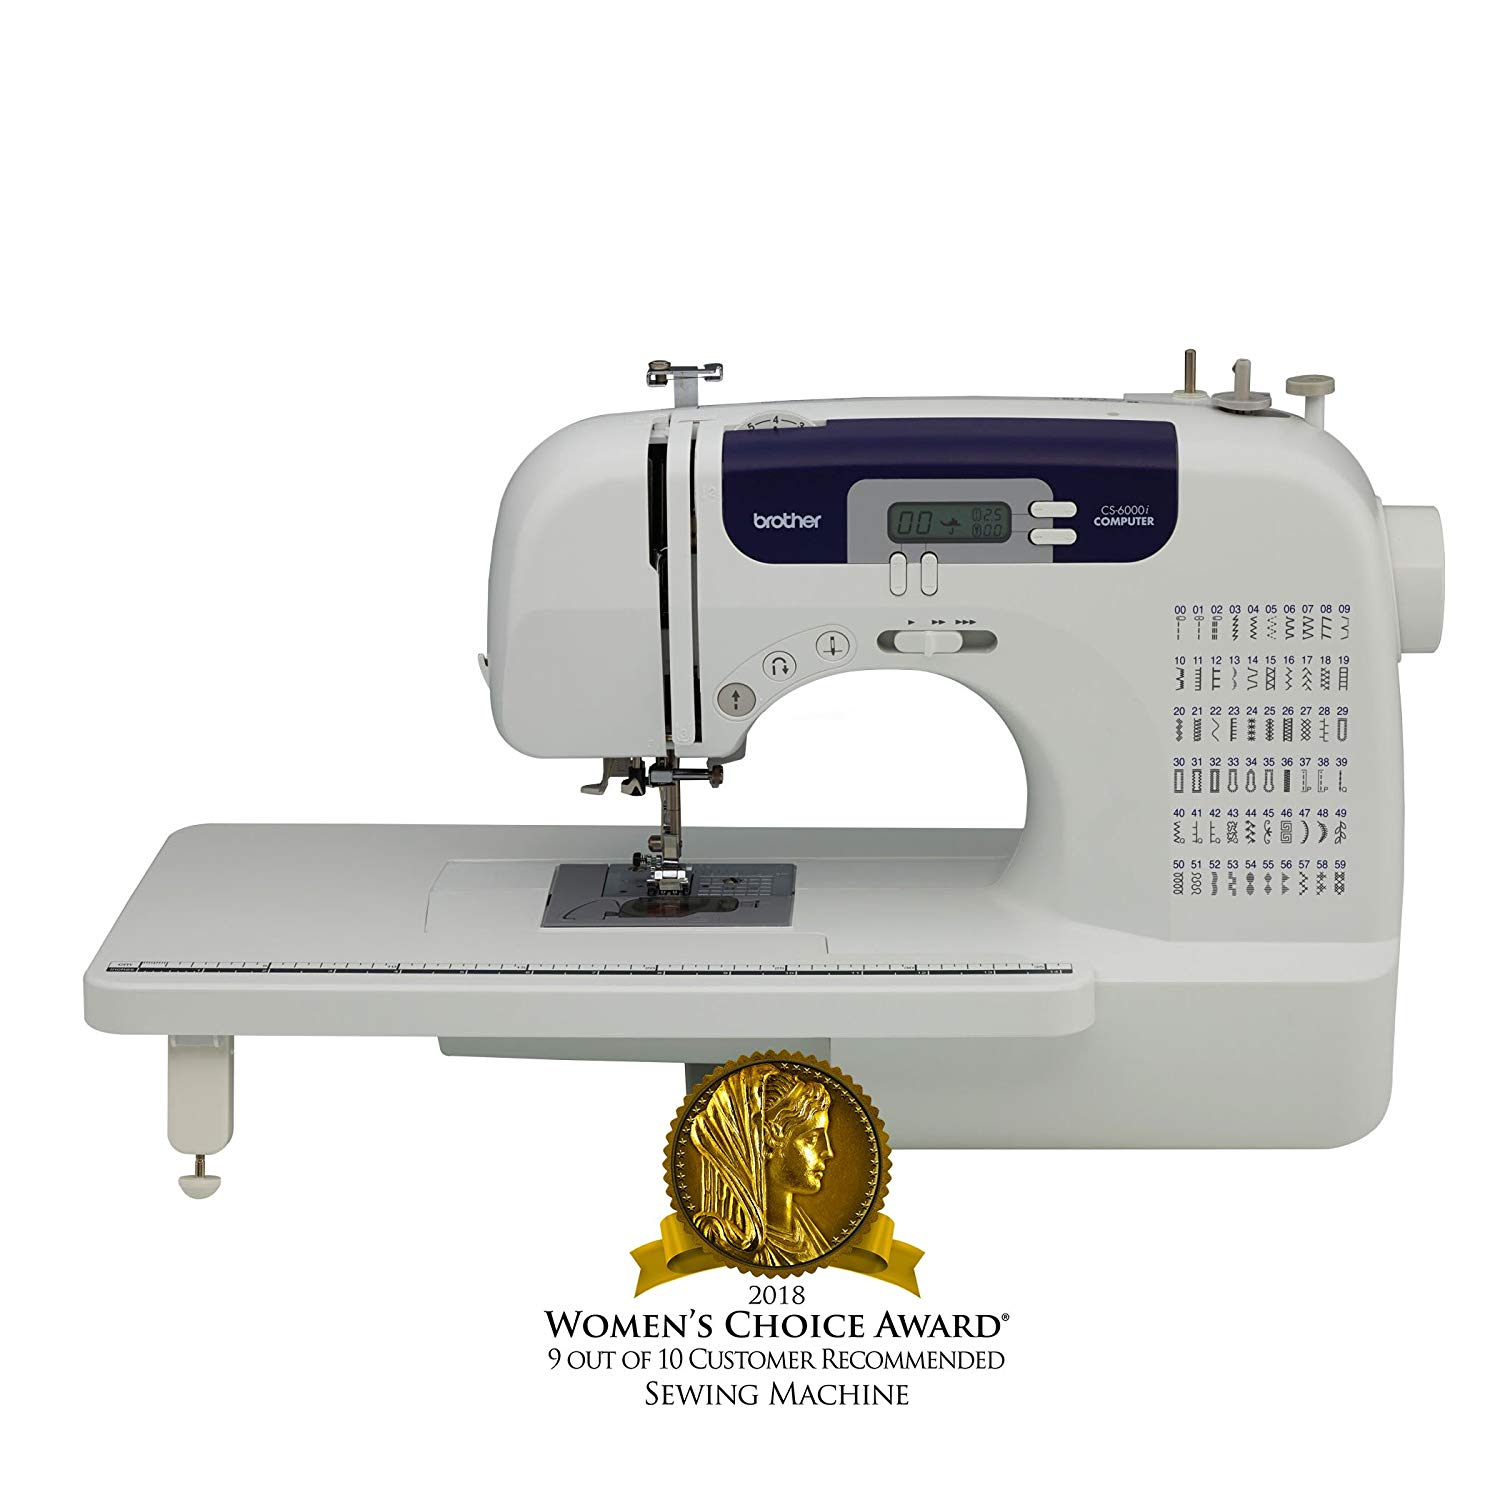 Top 10 Sewing Machines In USA – Under $200